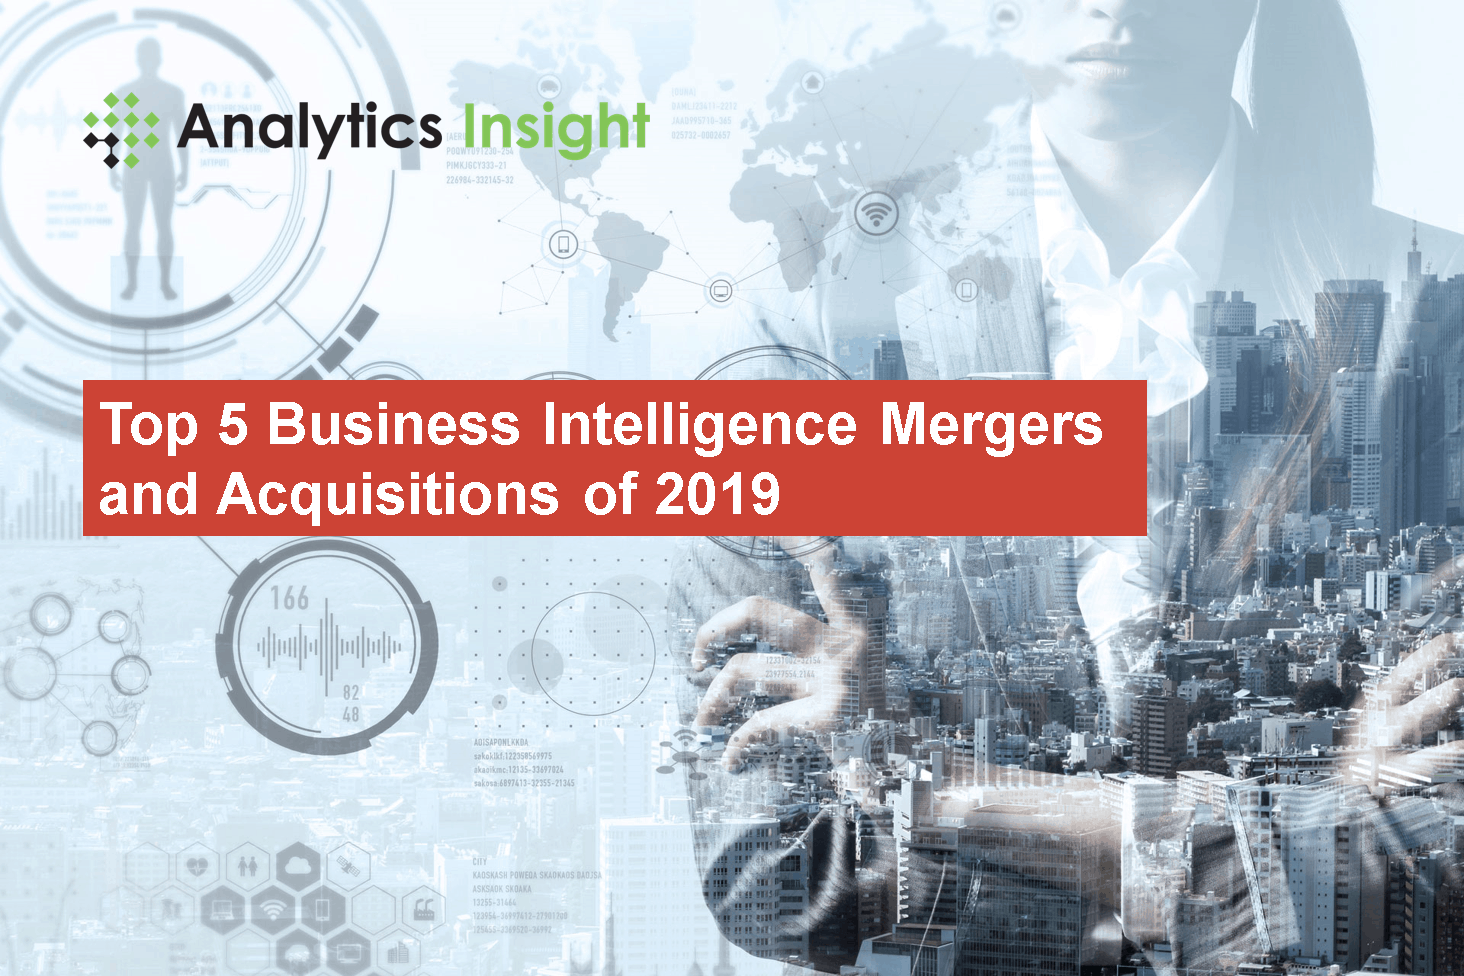 Business Intelligence Mergers and Acquisitions